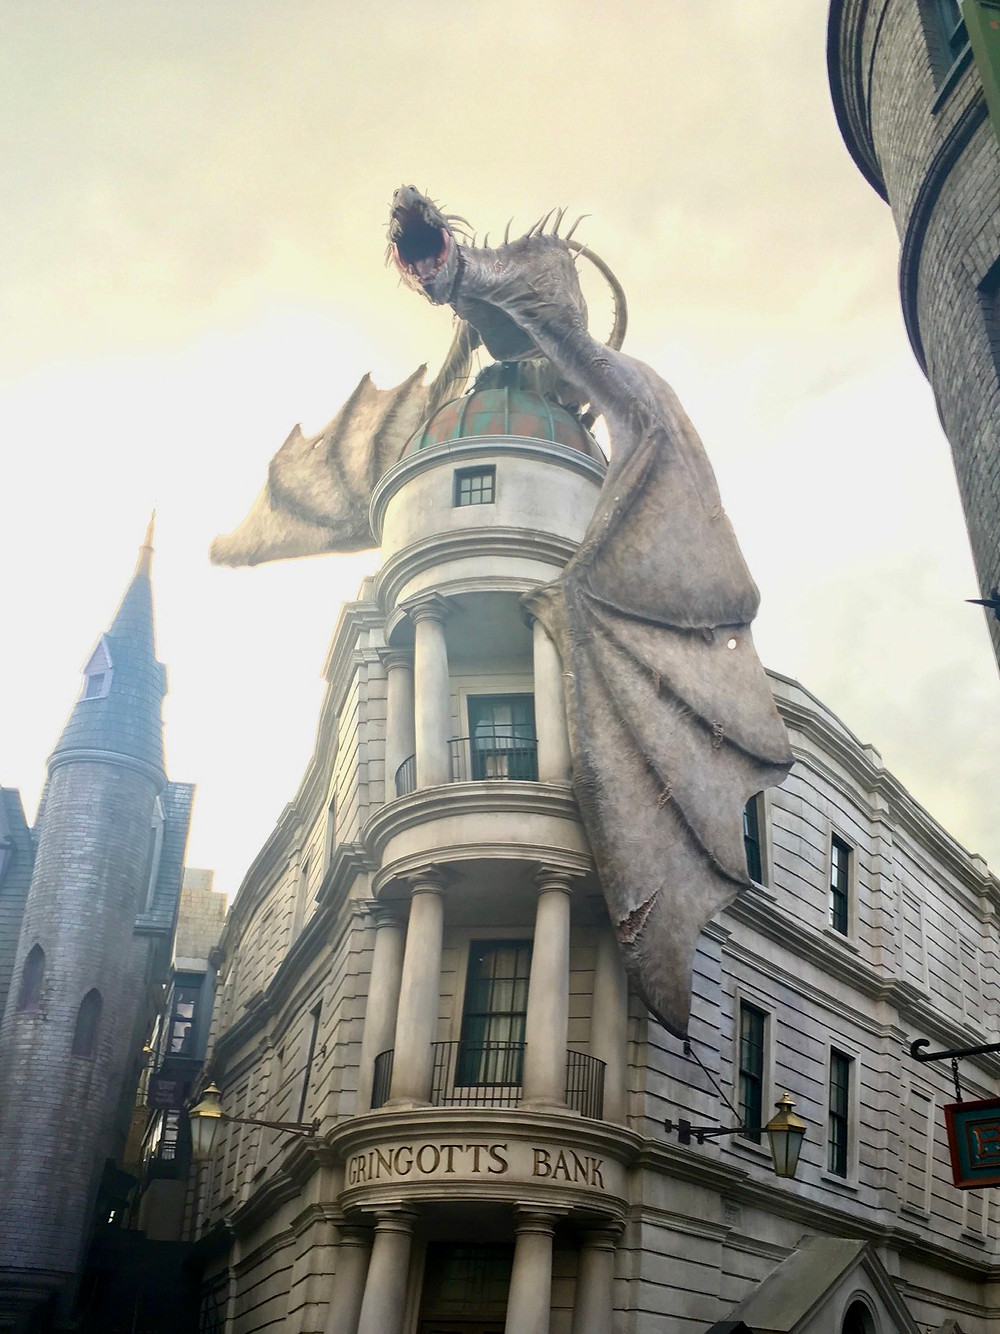 Gringotts Bank in Diagon Alley, with a fire breathing dragon sitting on the roof